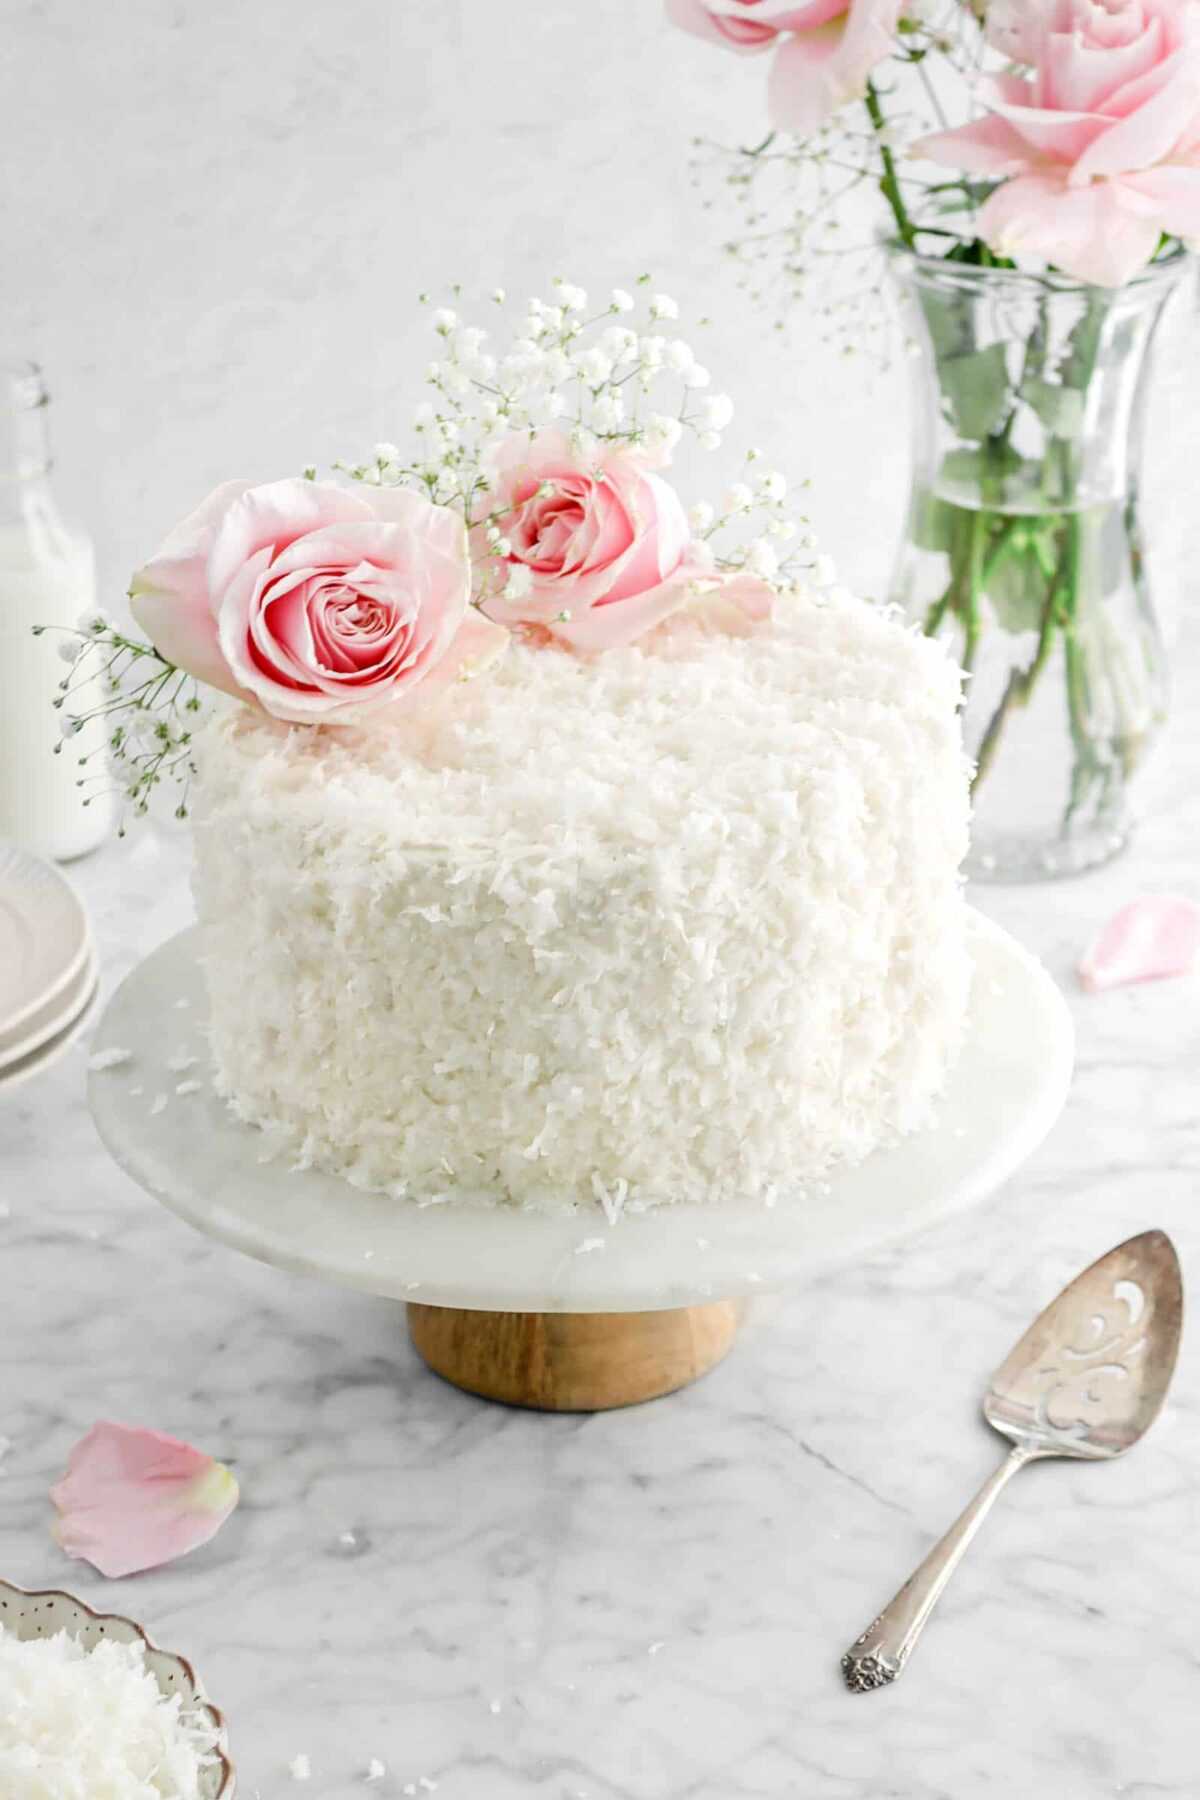 coconut cake with flowers on a cake plate with a cake knife and more flowers behind